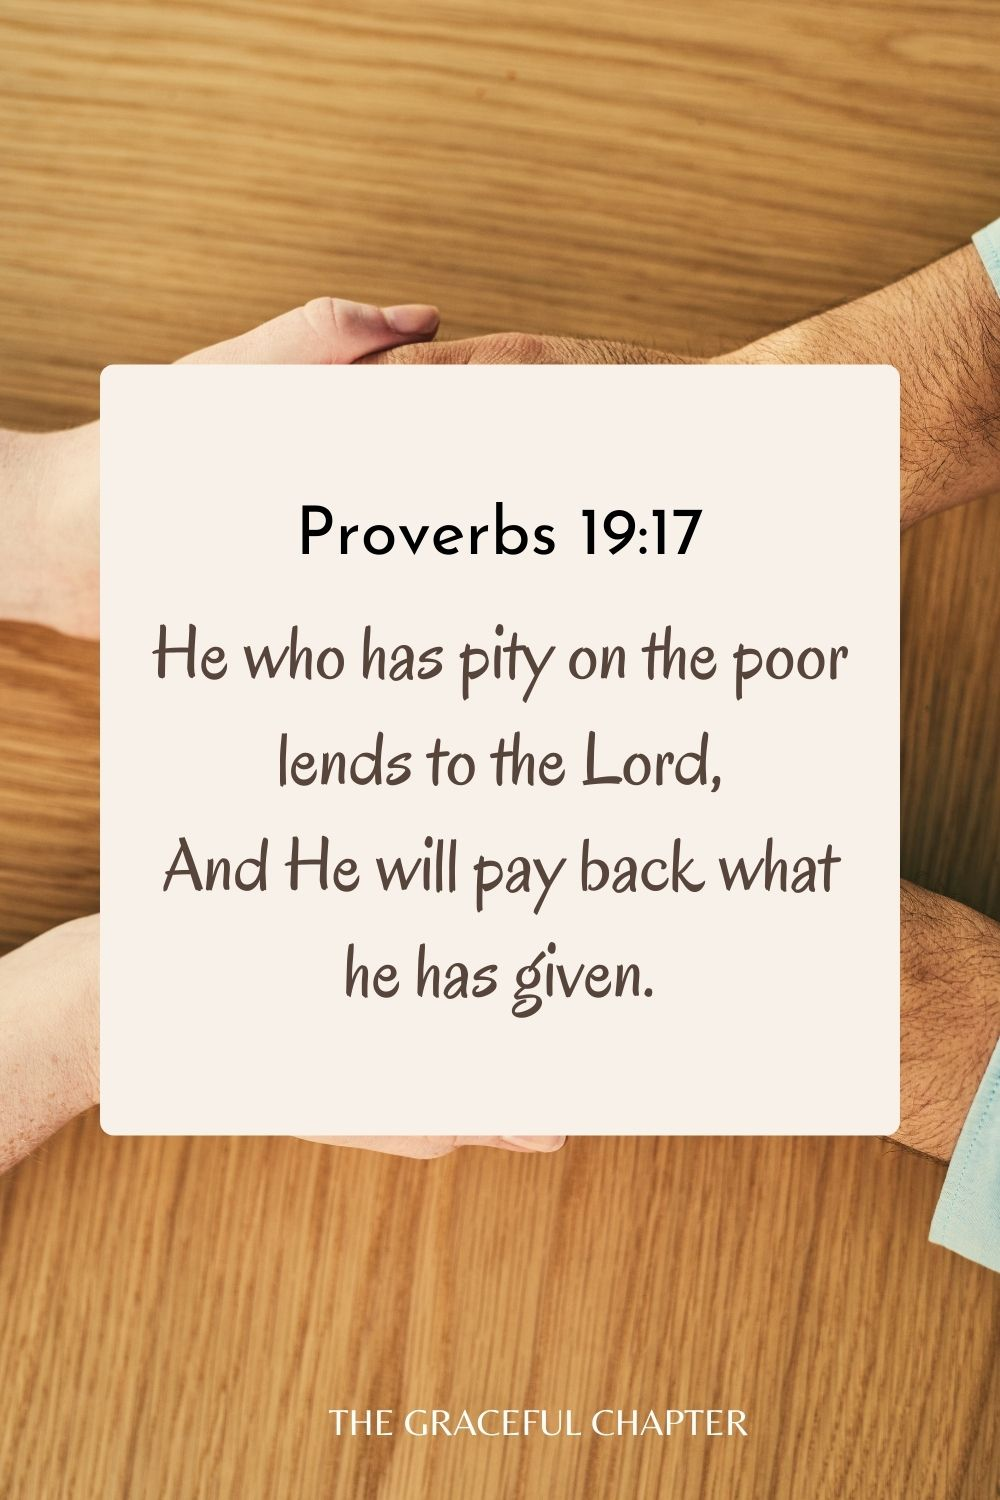 He who has pity on the poor lends to the Lord, And He will pay back what he has given. Proverbs 19:17